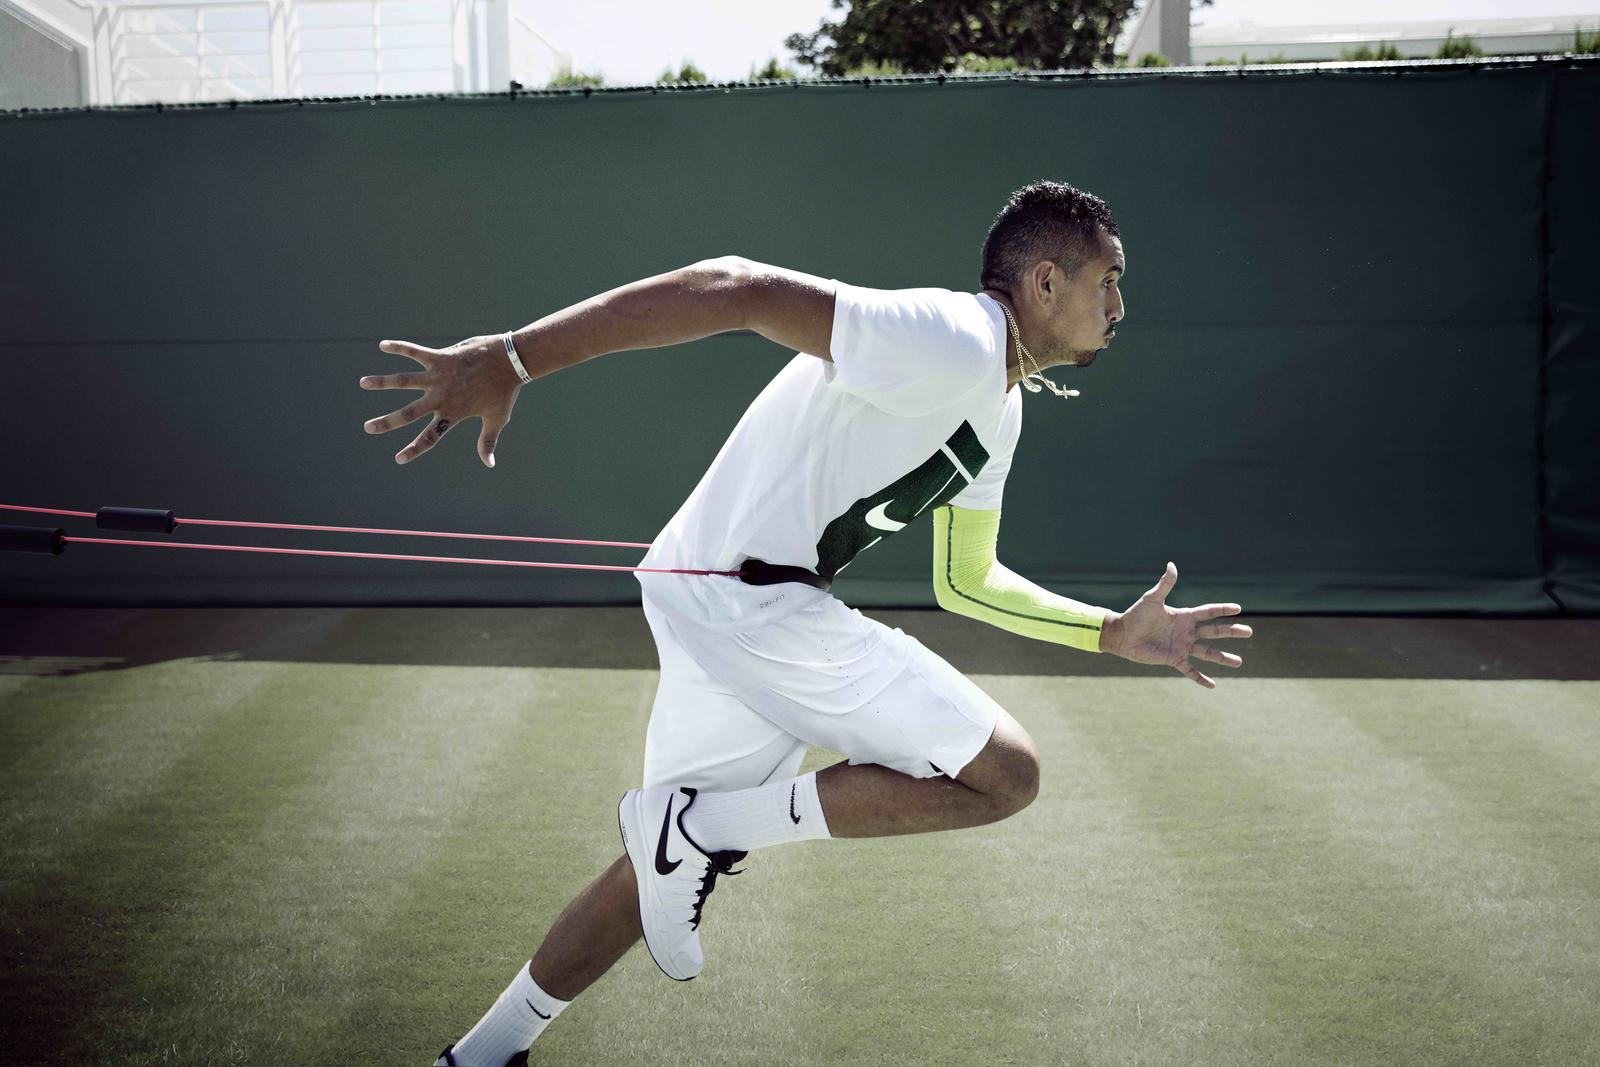 Nike tennis Training Wimbledon 2016 Kyrgios